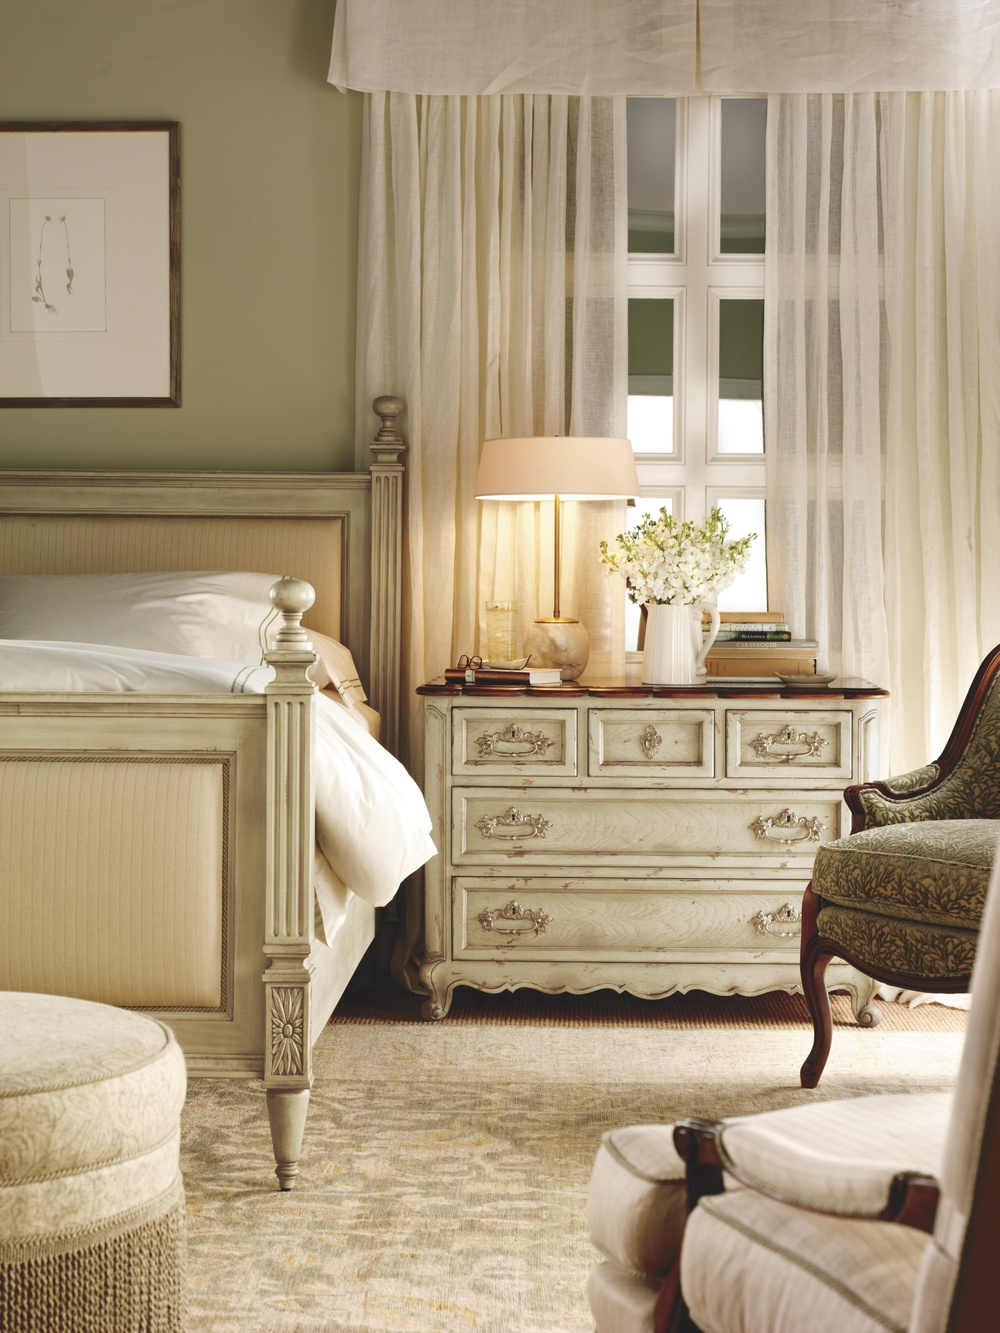 Hickory Chair - Left Bank King Bed